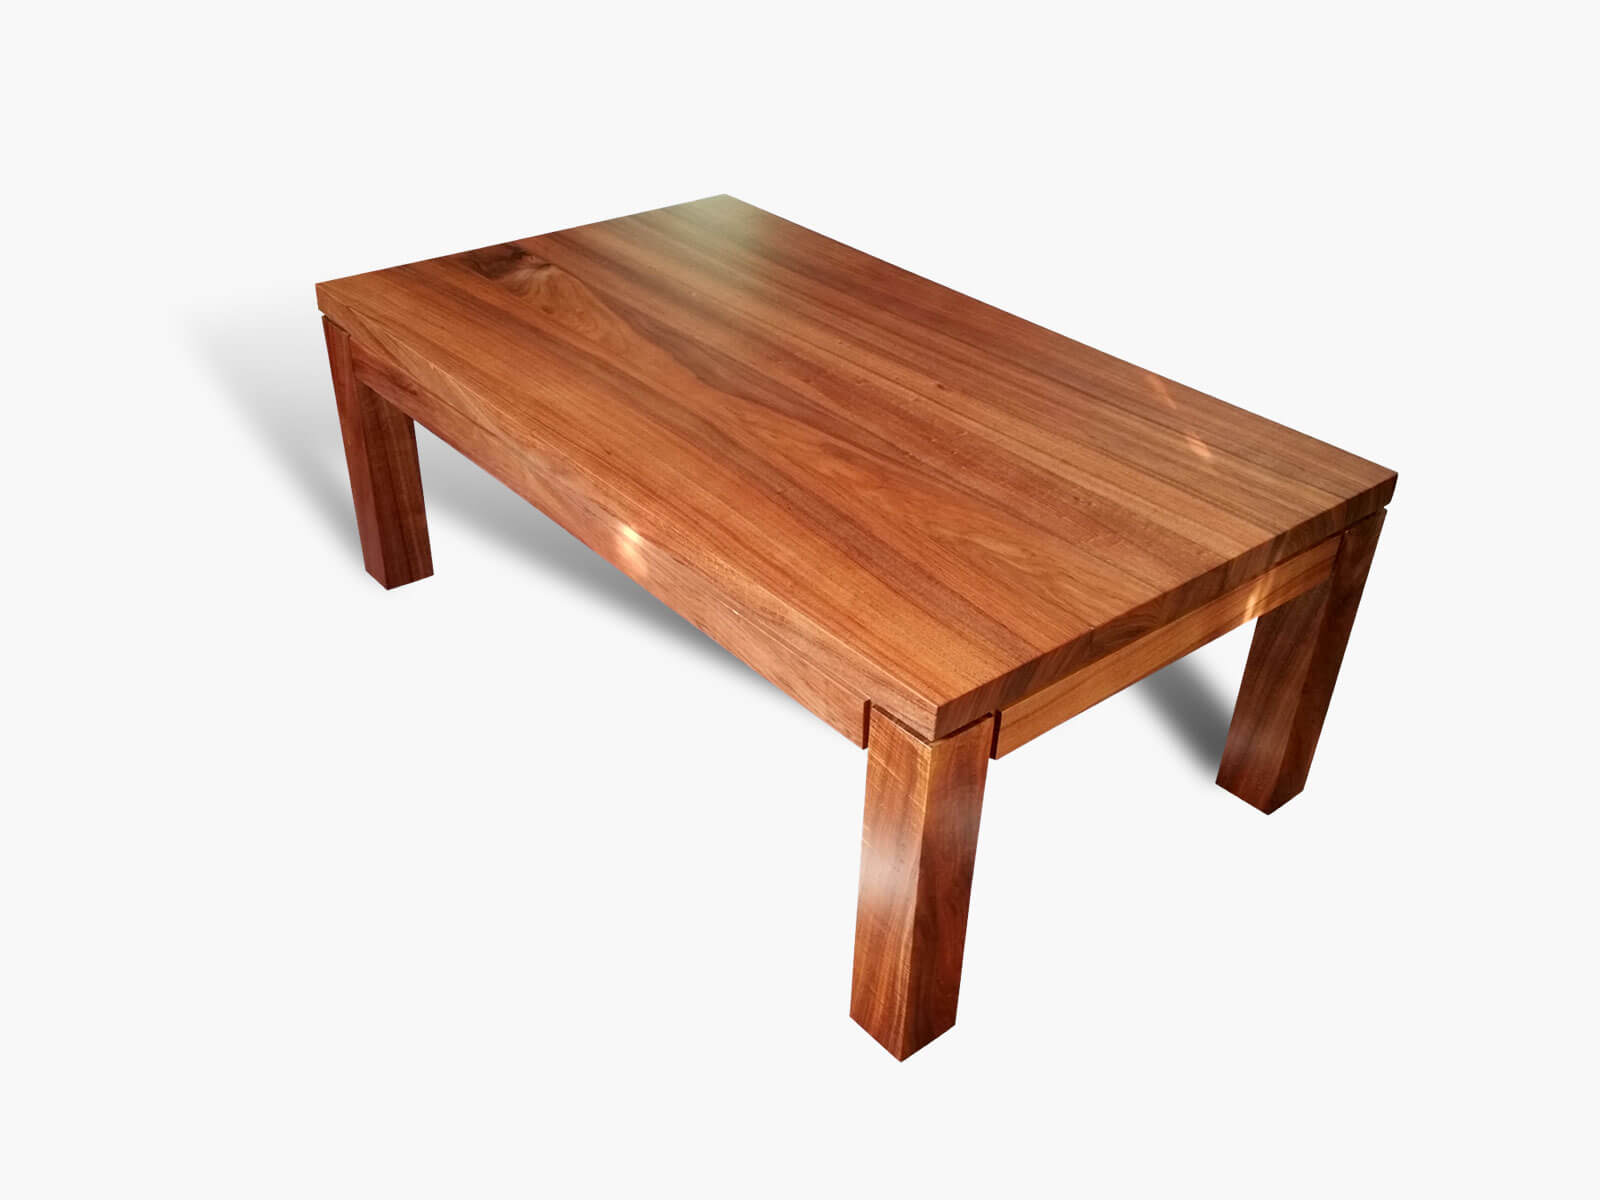 Doonan Blackwood Timber Coffee Table